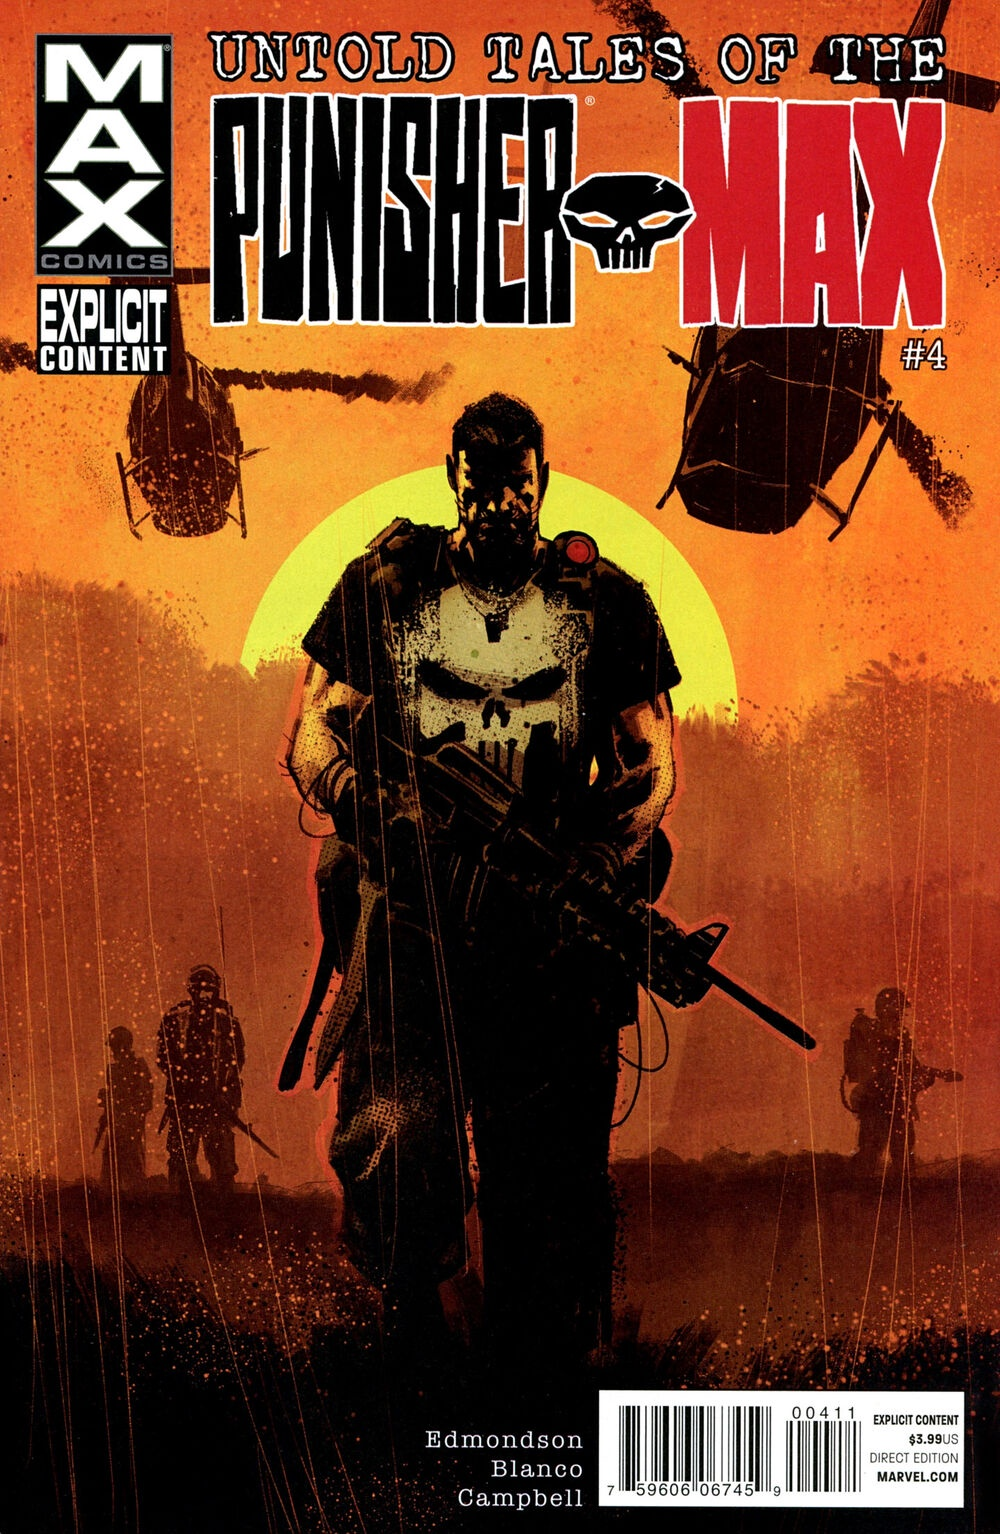 Edmmondson Blanco Campbell Untold Tales of Punisher Max (2012) #4